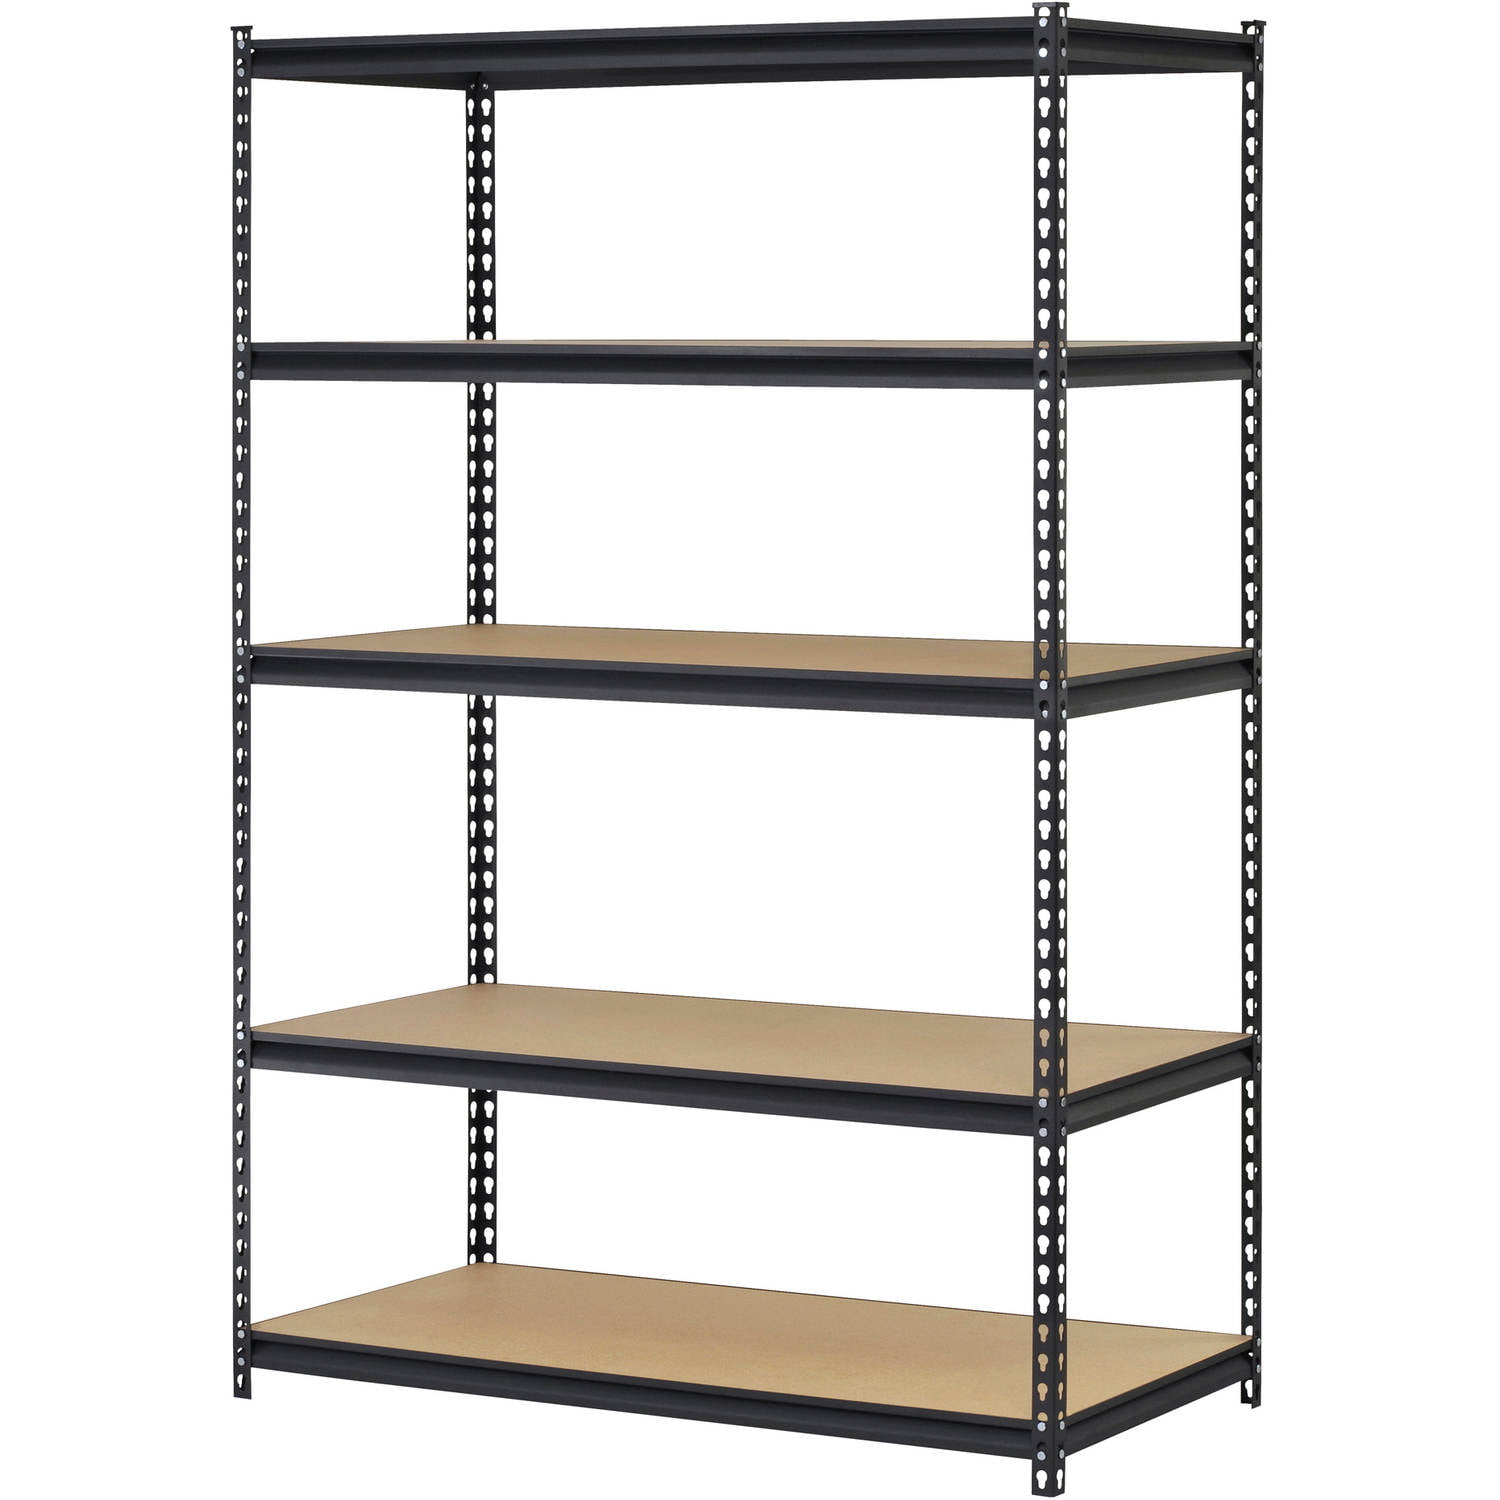 heavy duty storage shelves. Yaheetech 5 Tier Storage Rack Heavy Duty Shelf Steel Shelving Unit27 By 12 60 Inch Walmartcom Shelves